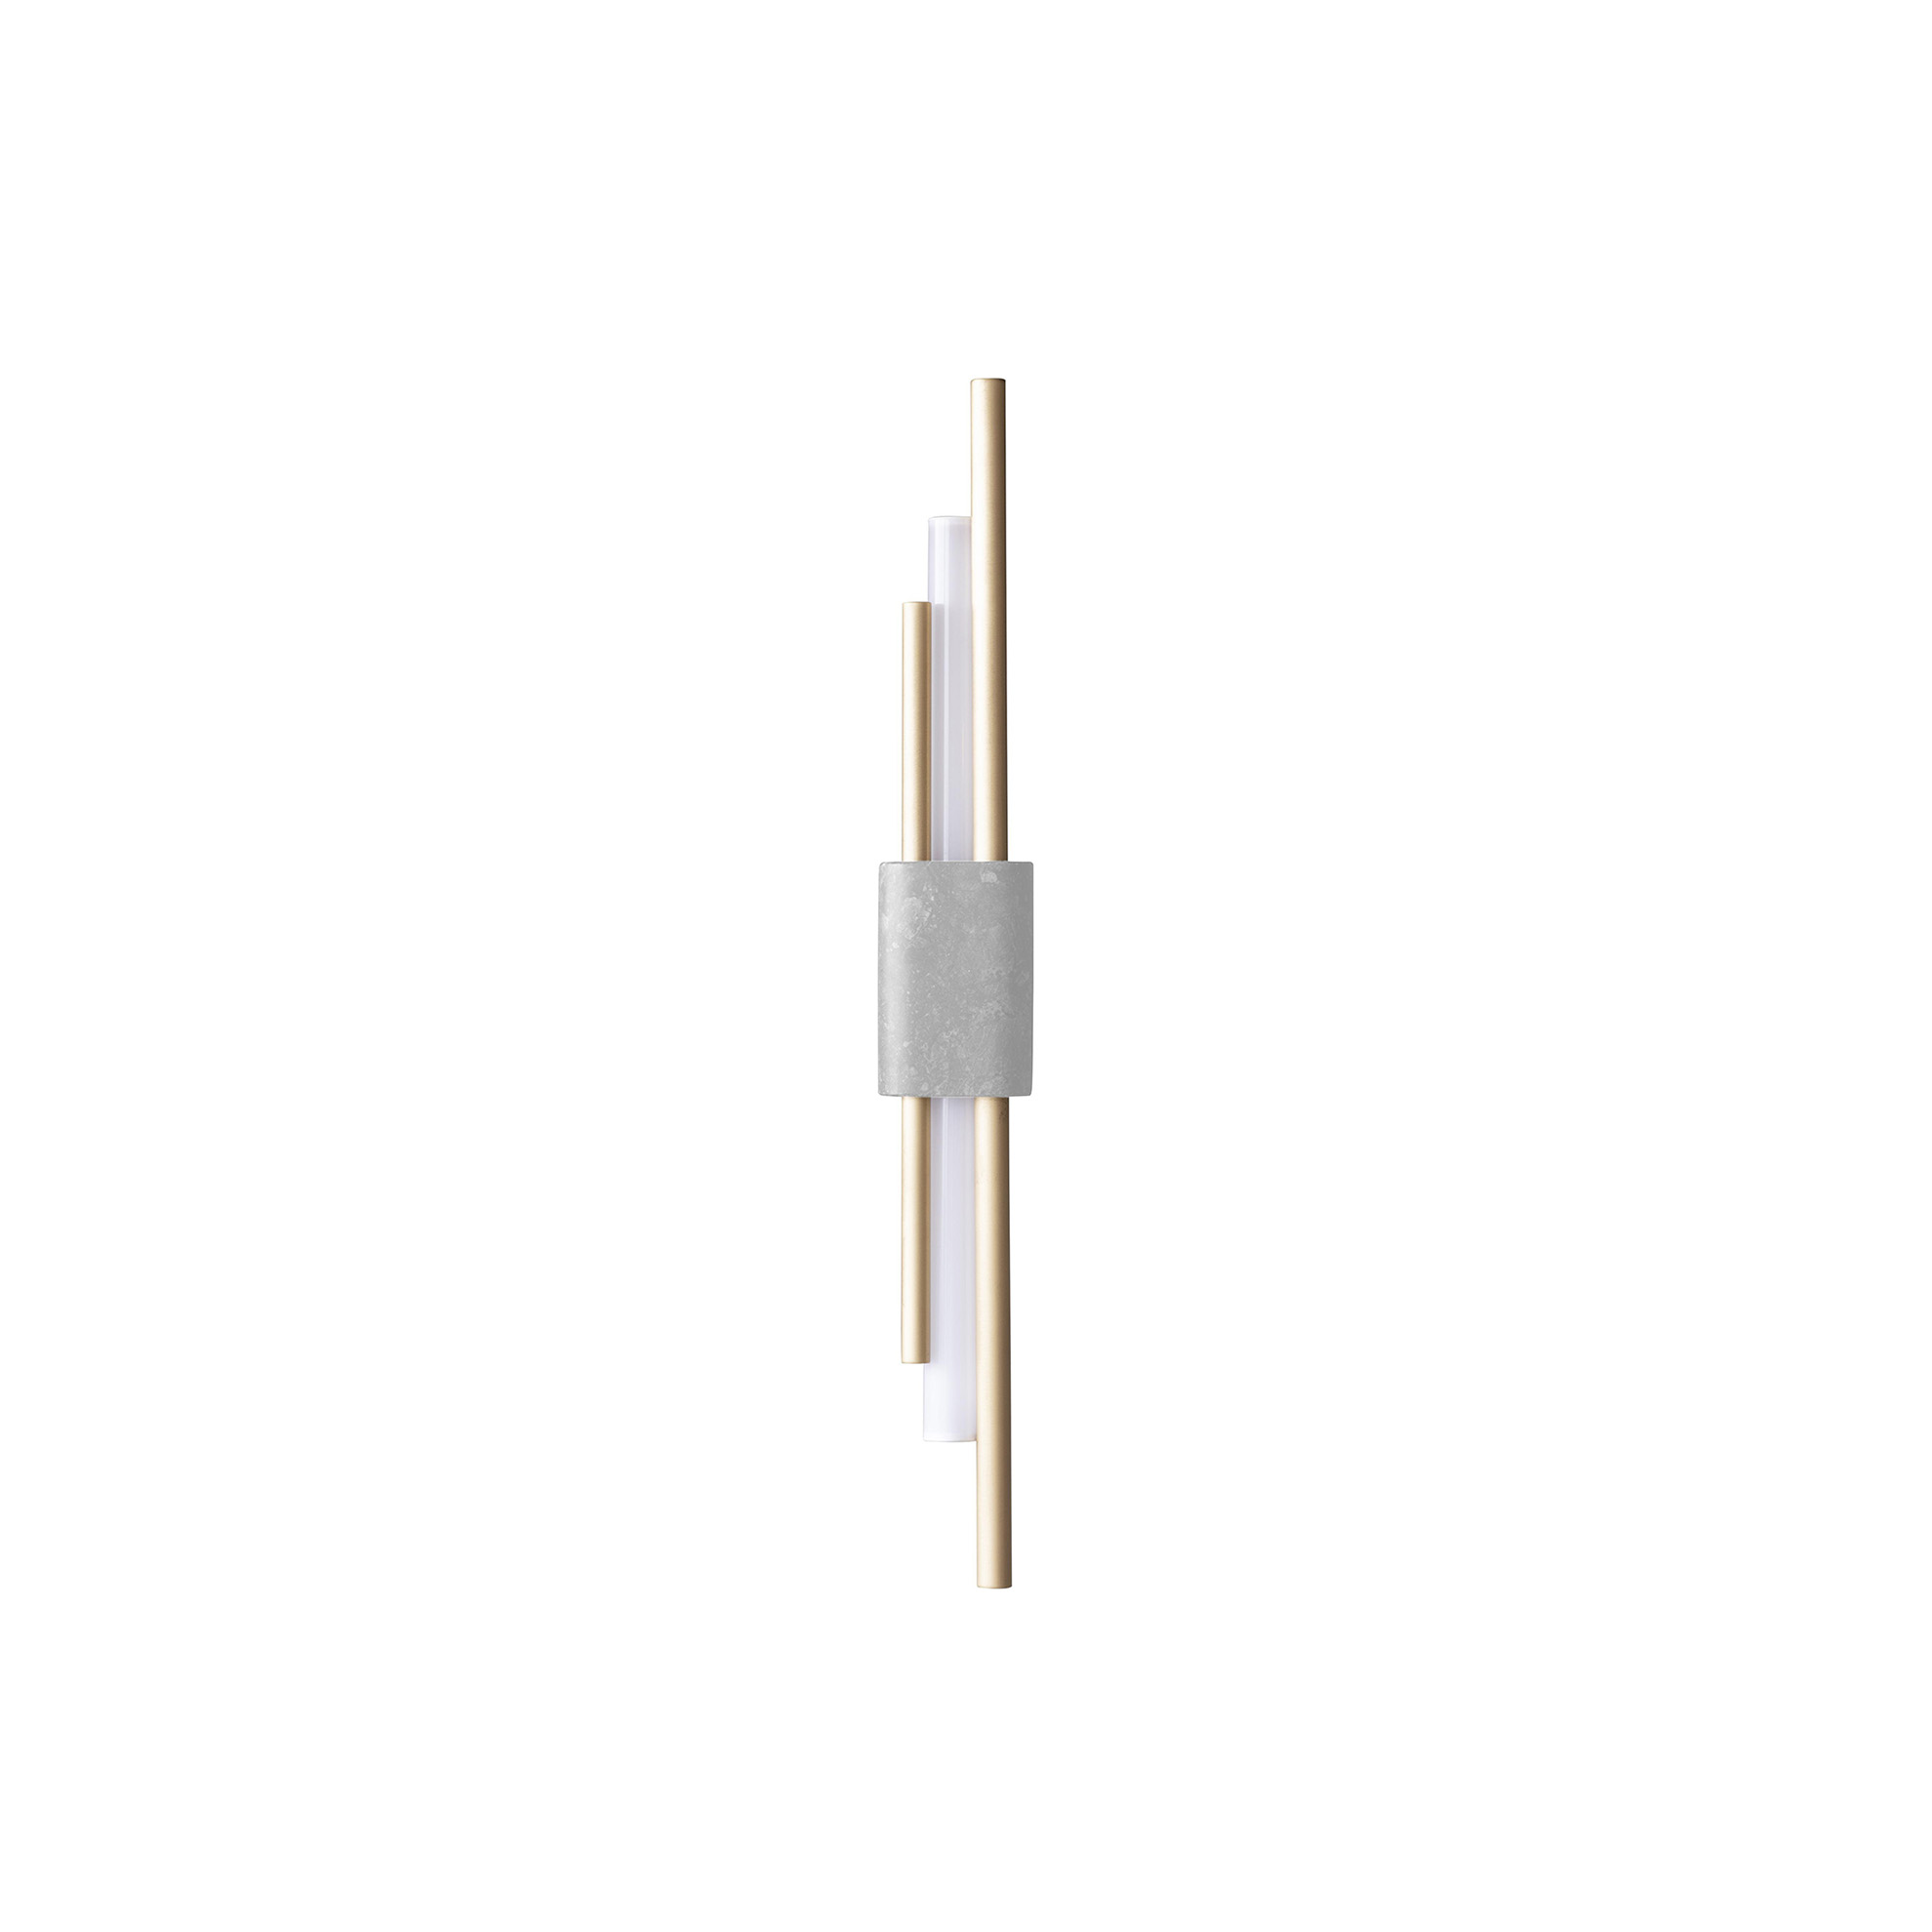 Tanto Wall Light - Large - The big brother to the Tanto Wall Light, this larger version has long and sculptural asymmetric brass rods combined with an opal lamp. With the addition of either Green Guatemala or White Carrera marble, this piece commands attention in any interior.  | Matter of Stuff